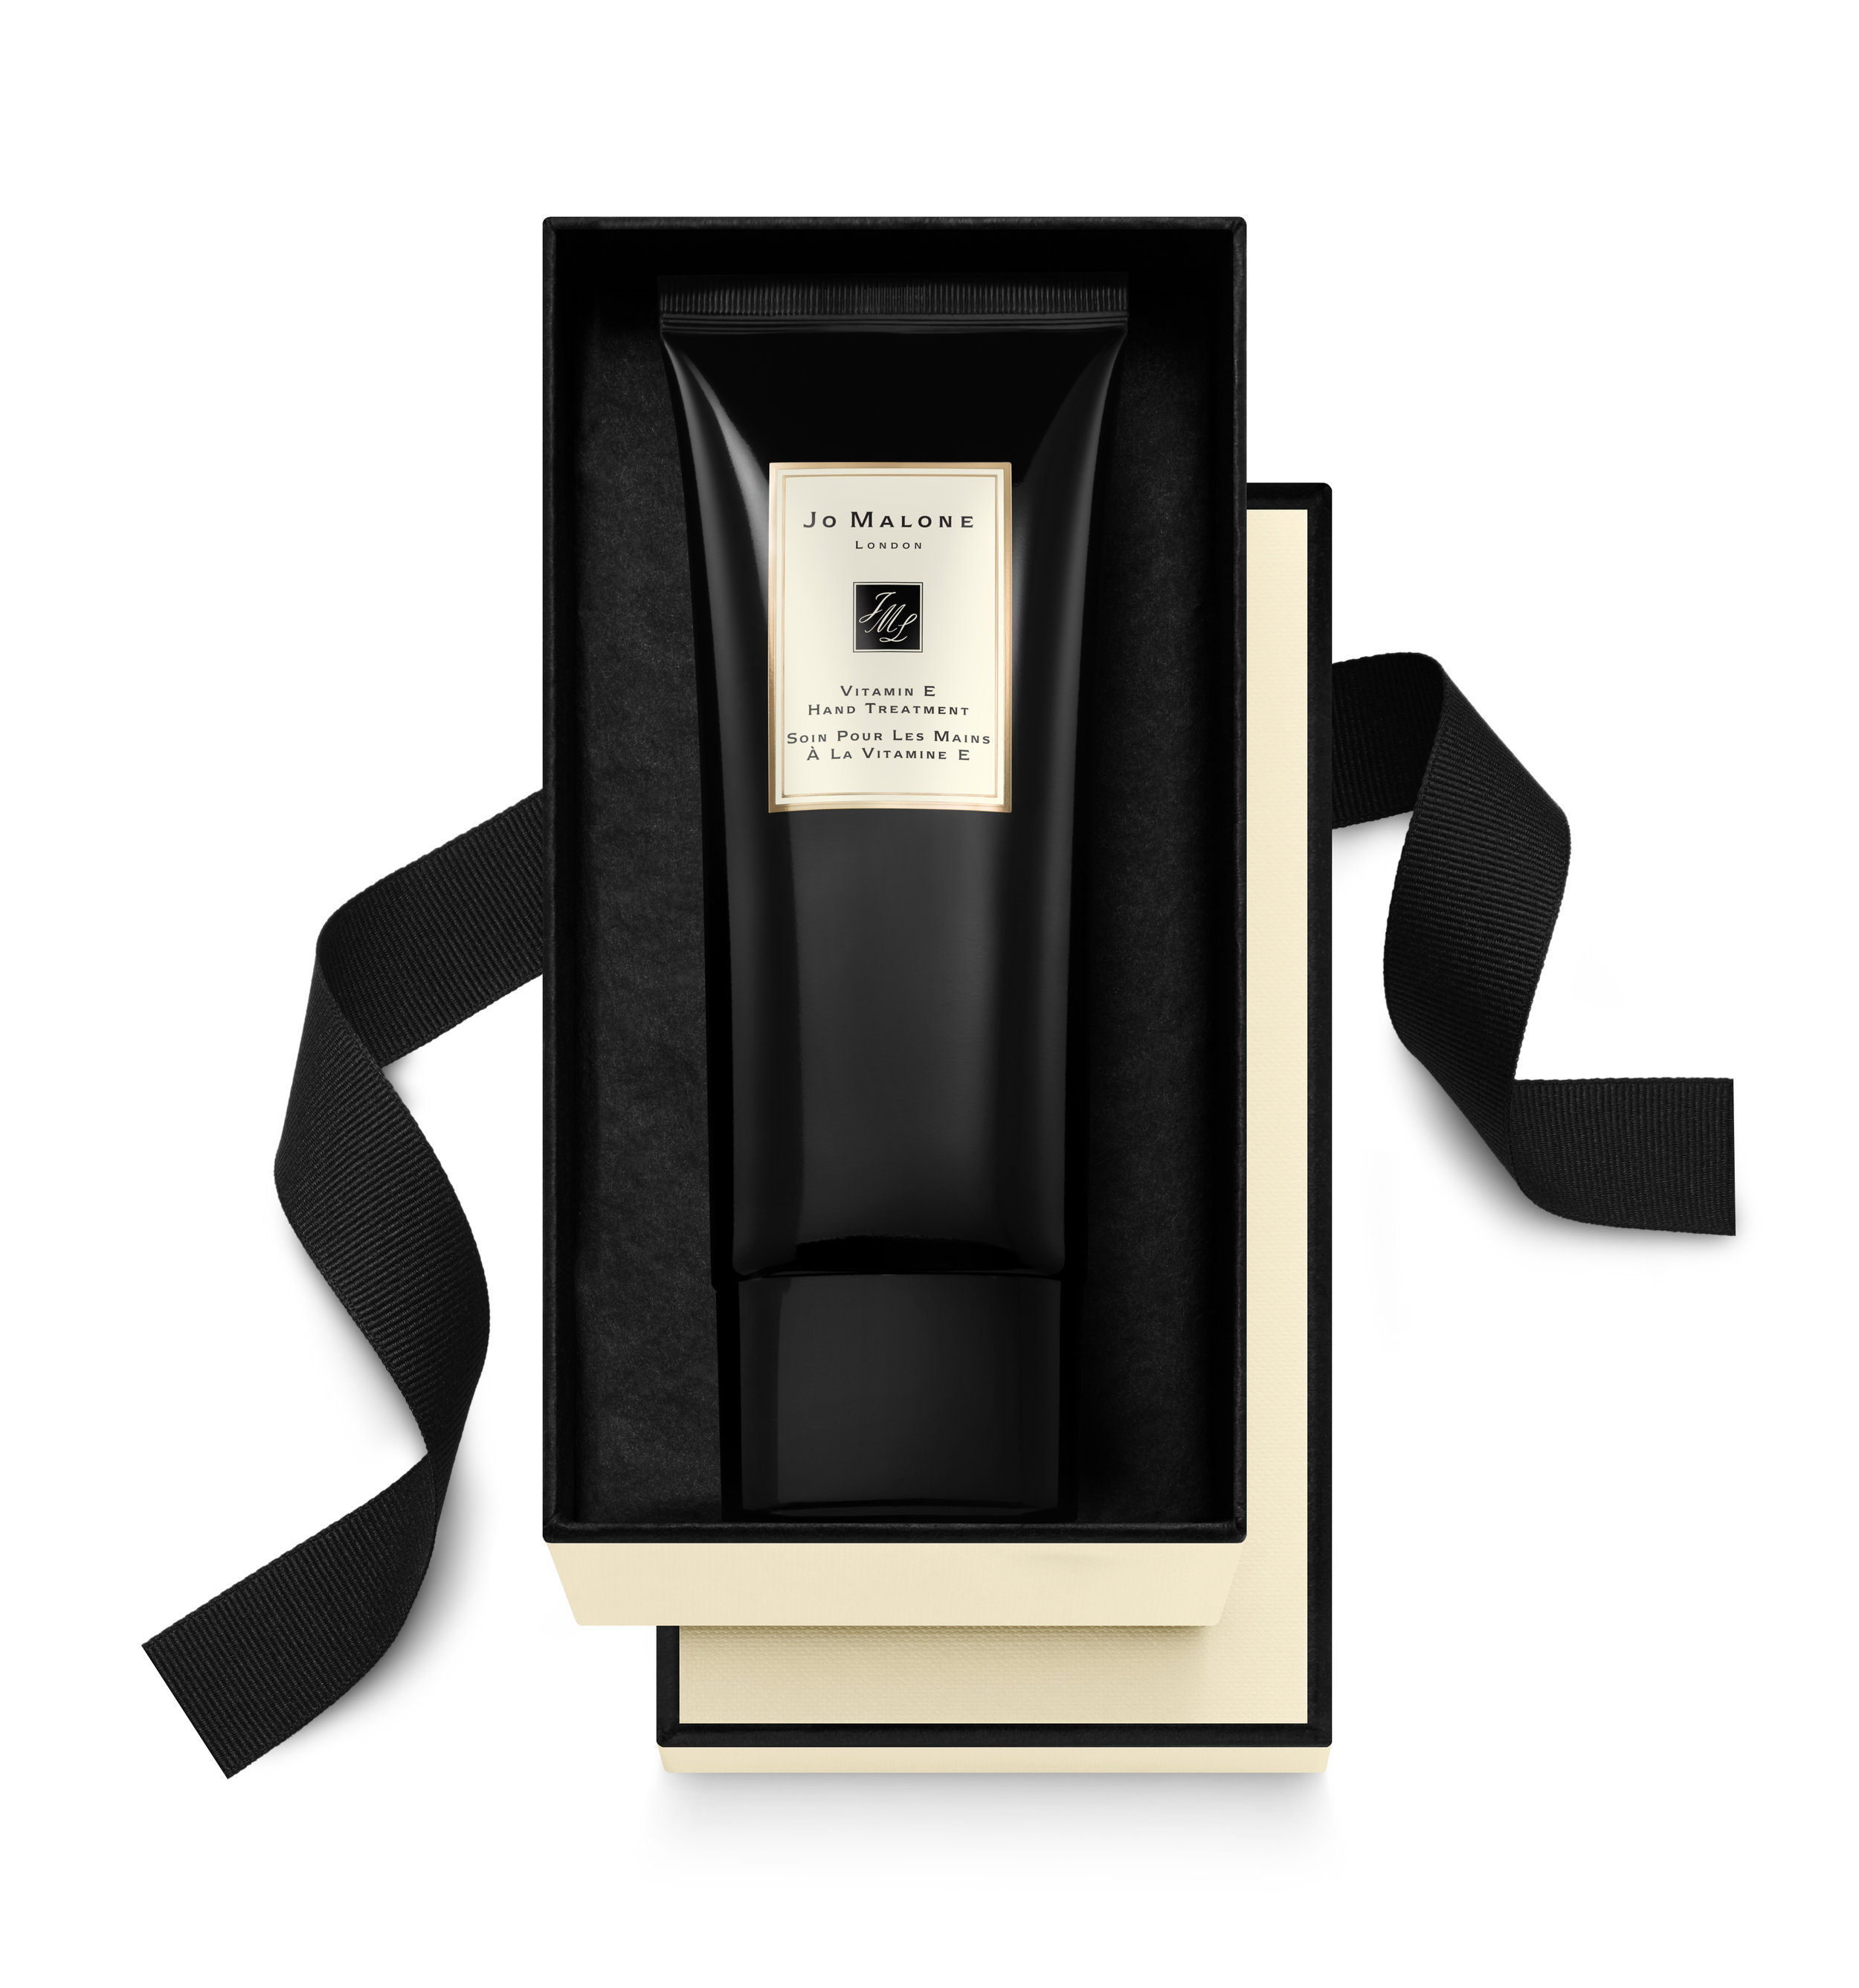 Jo Malone London :: Sephora